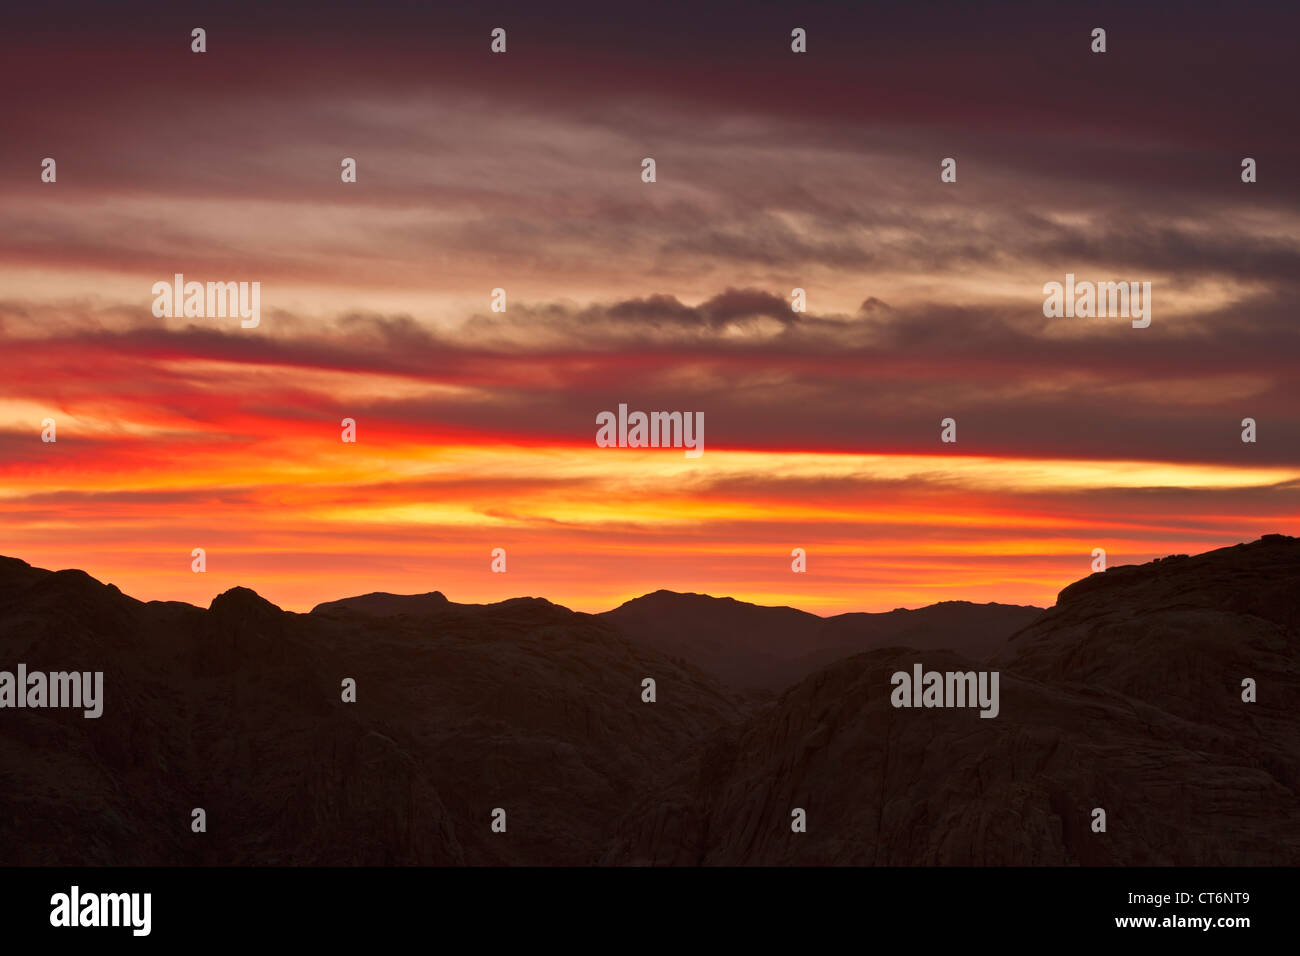 Sunset through clouds from the top of Mount Sinai, Egypt - Stock Image